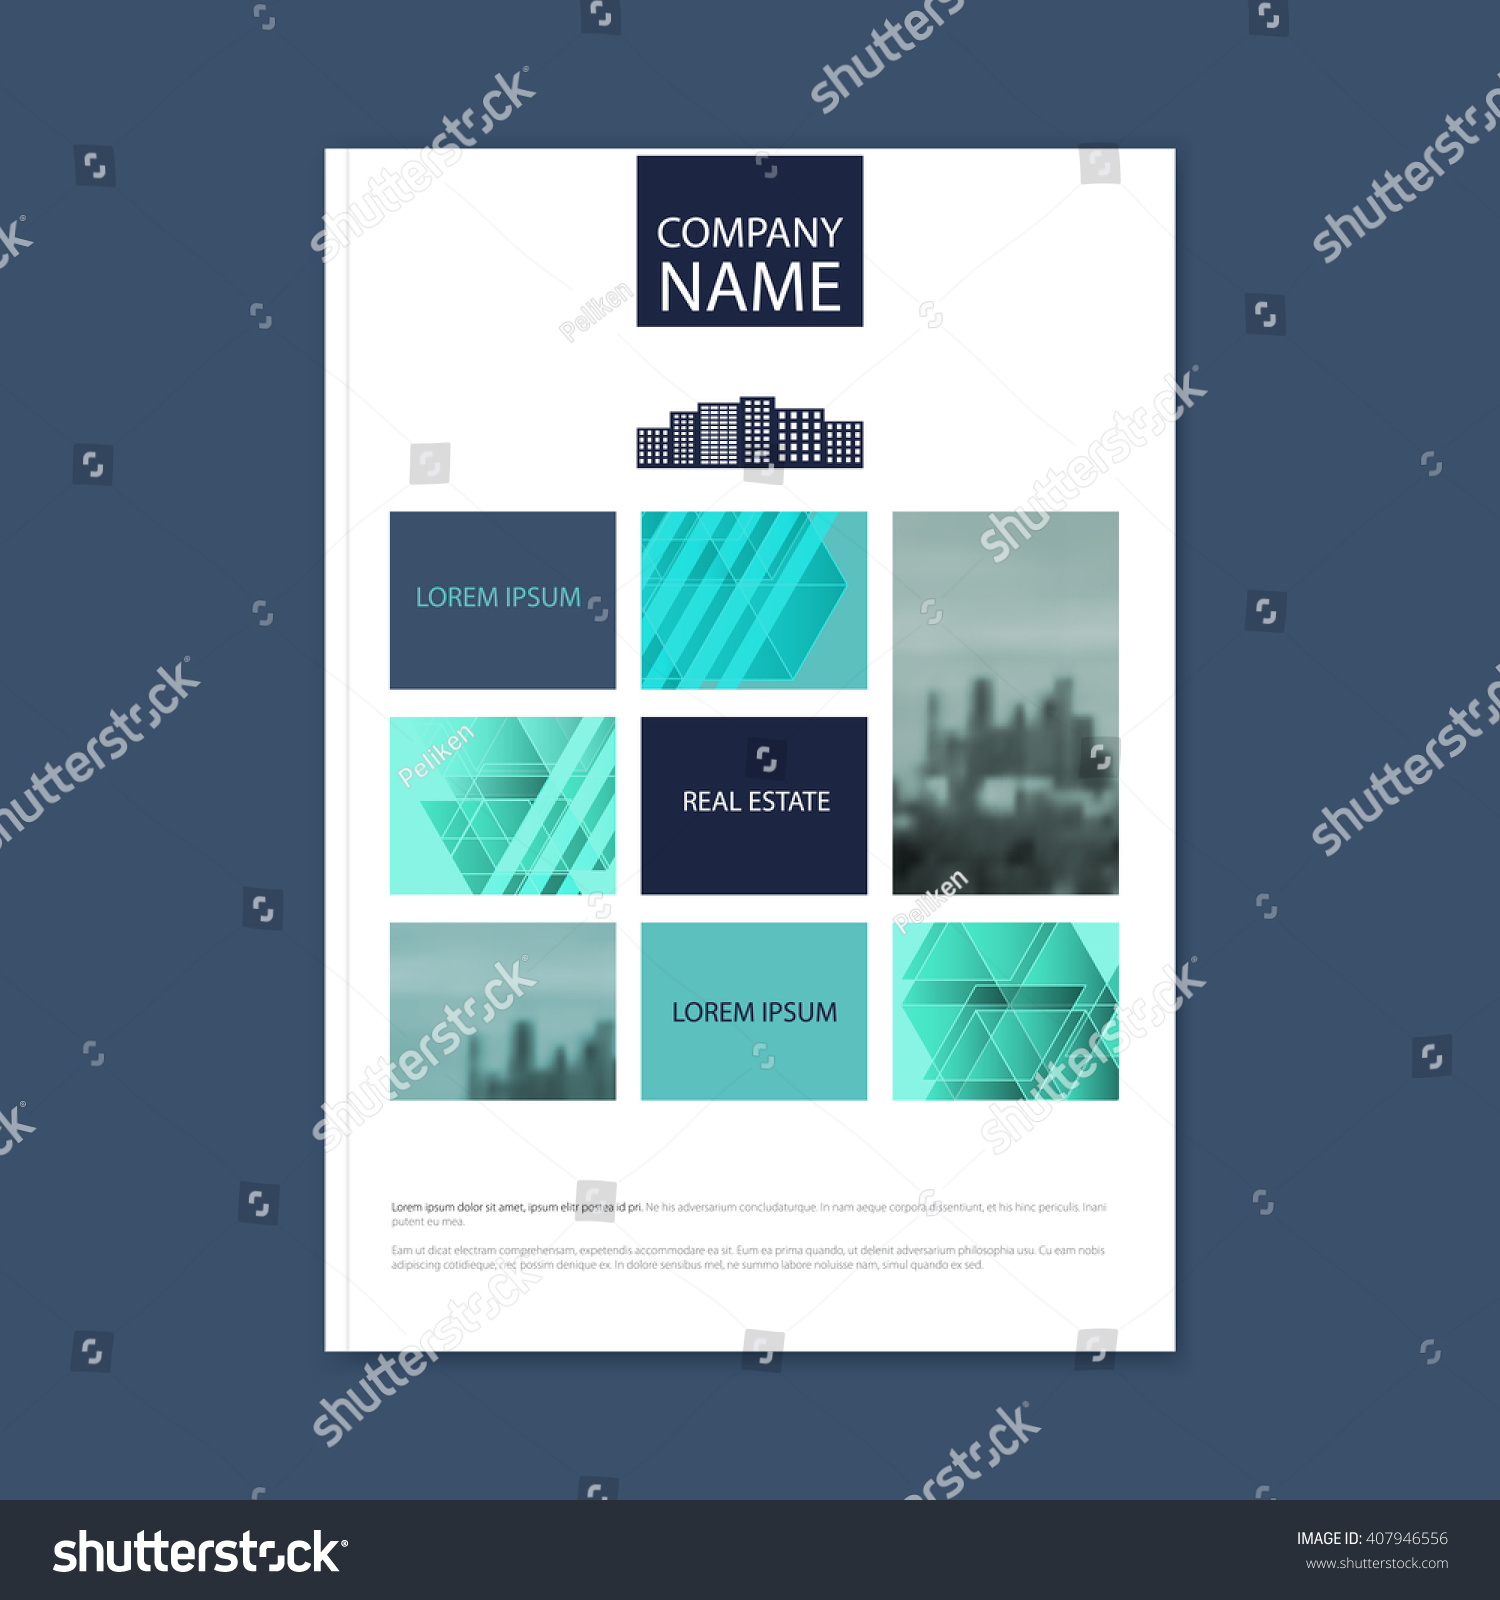 royalty concept of architecture design stock concept of architecture design photo frame vector illustration brochure template for real estate